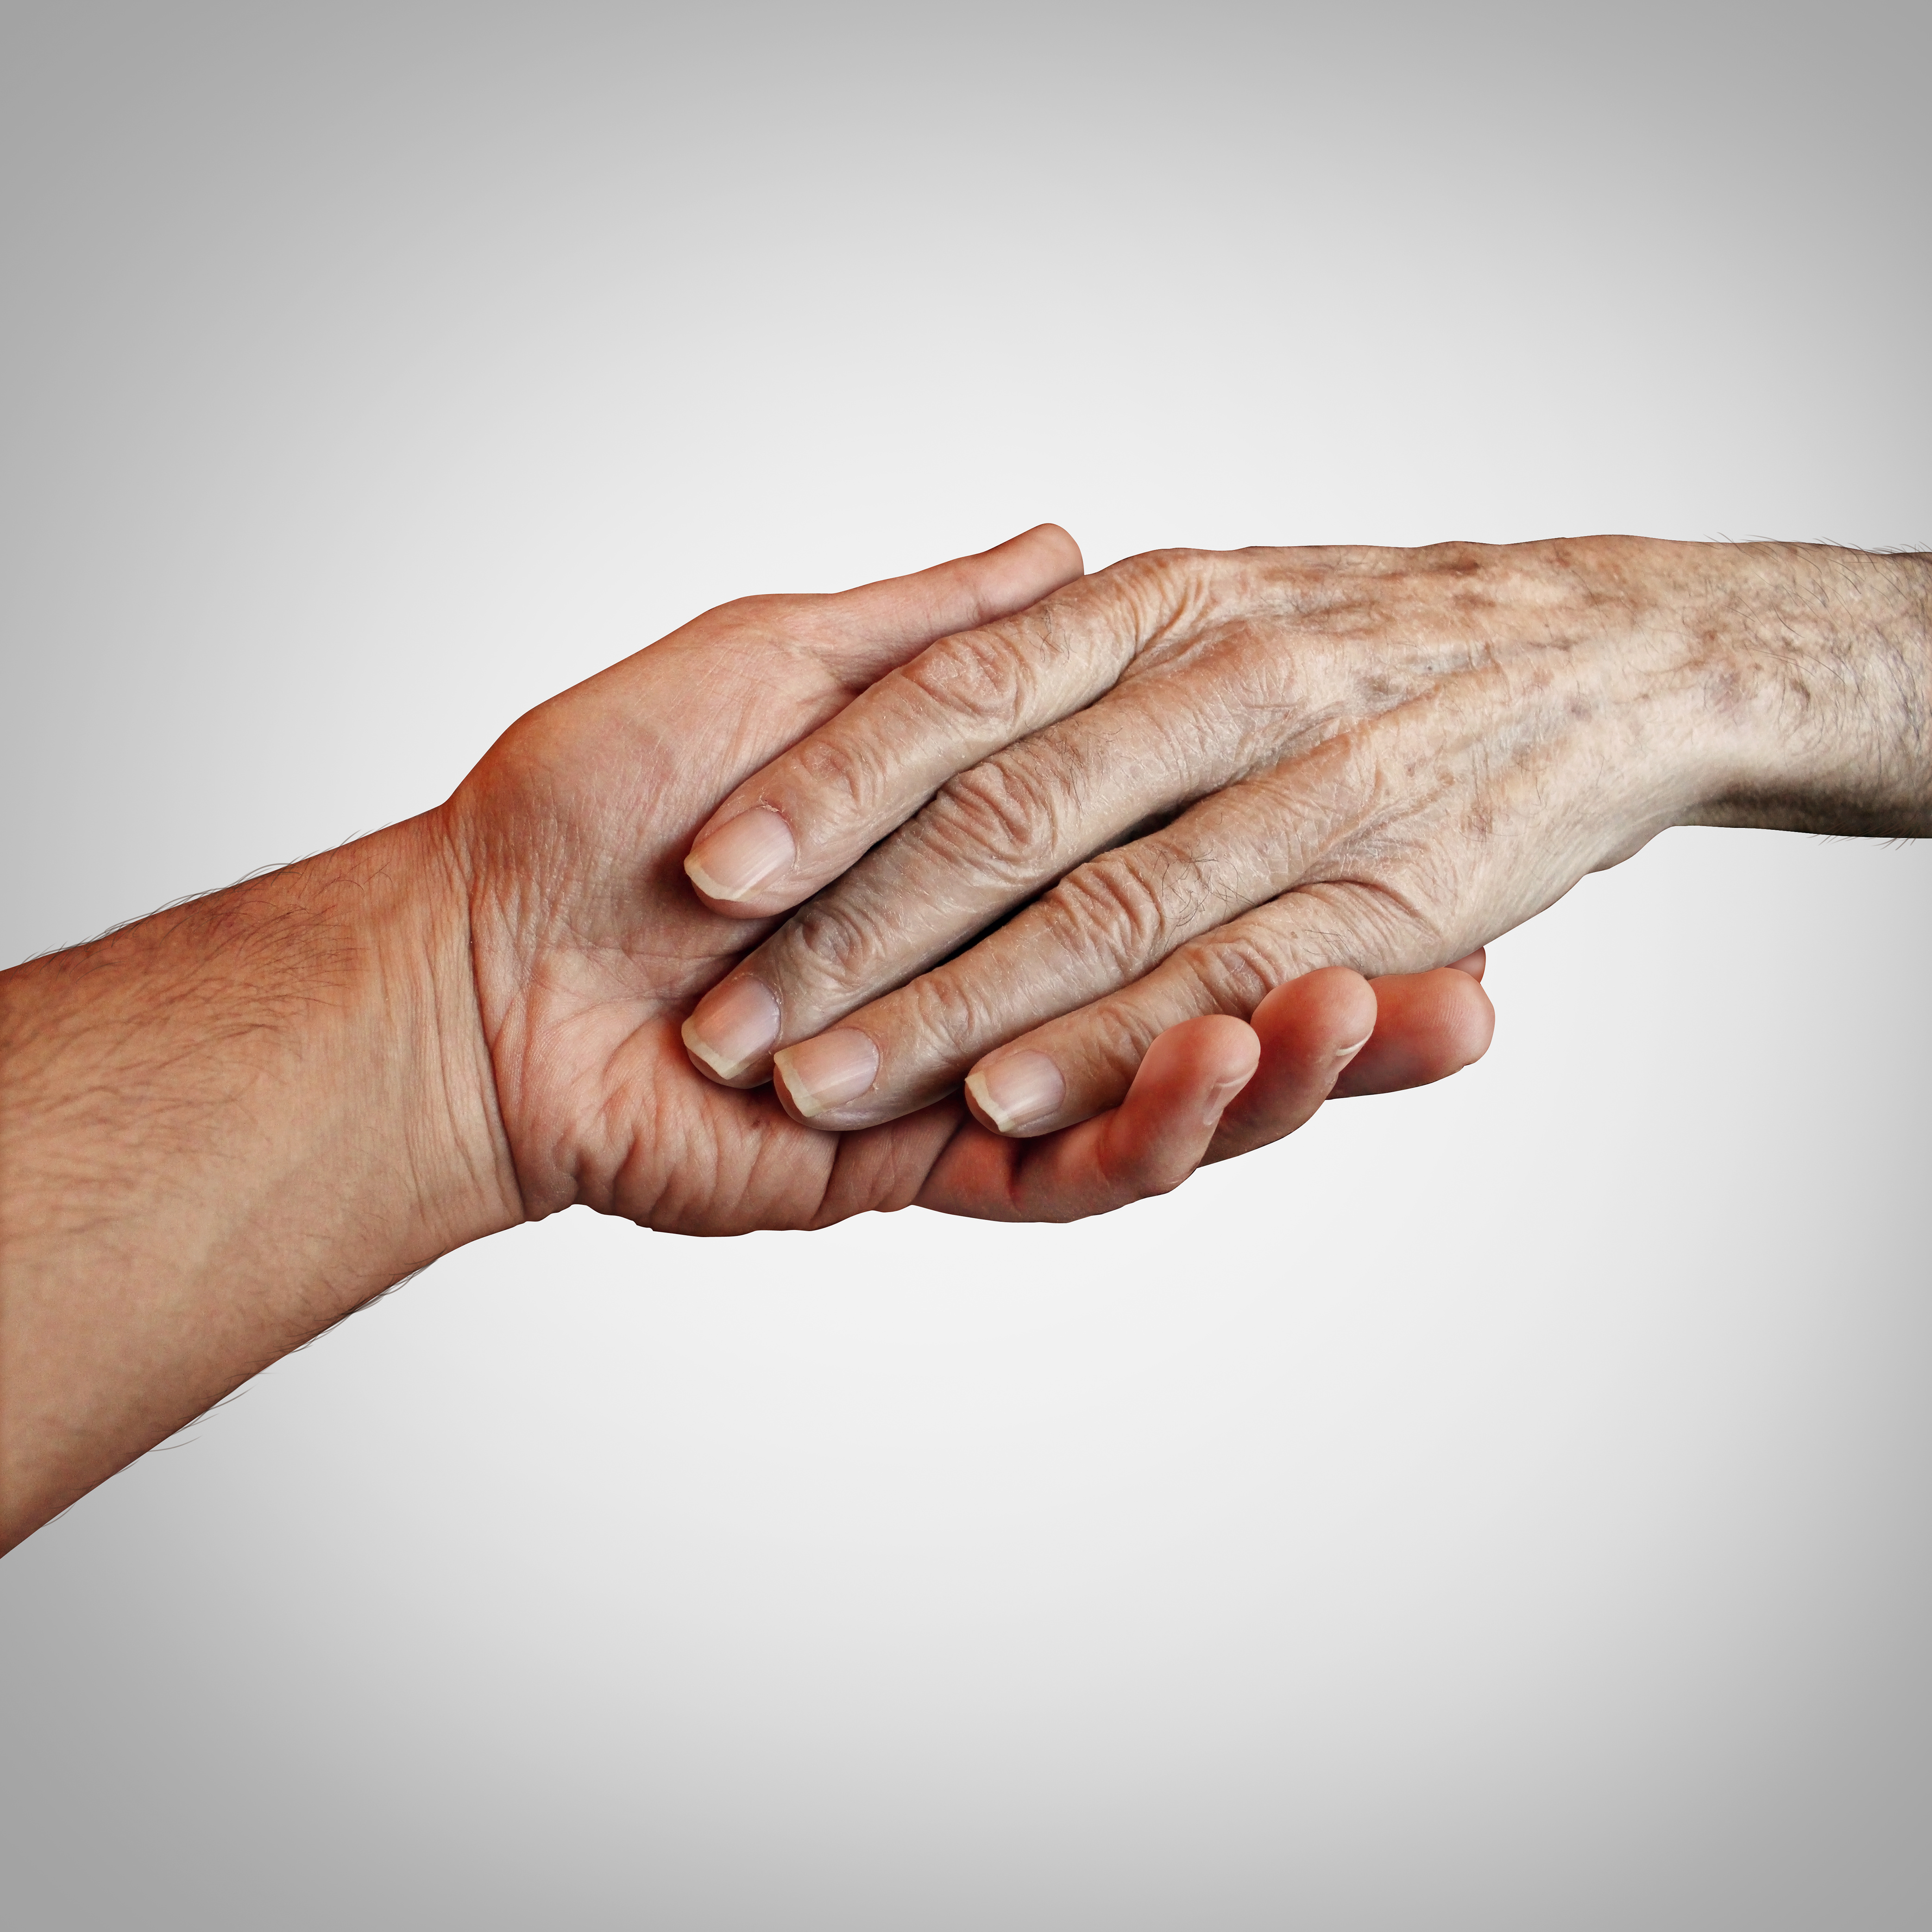 Alzheimer patient care or elderly dementia homecare as a supportive caregiver providing end of life support. concept.